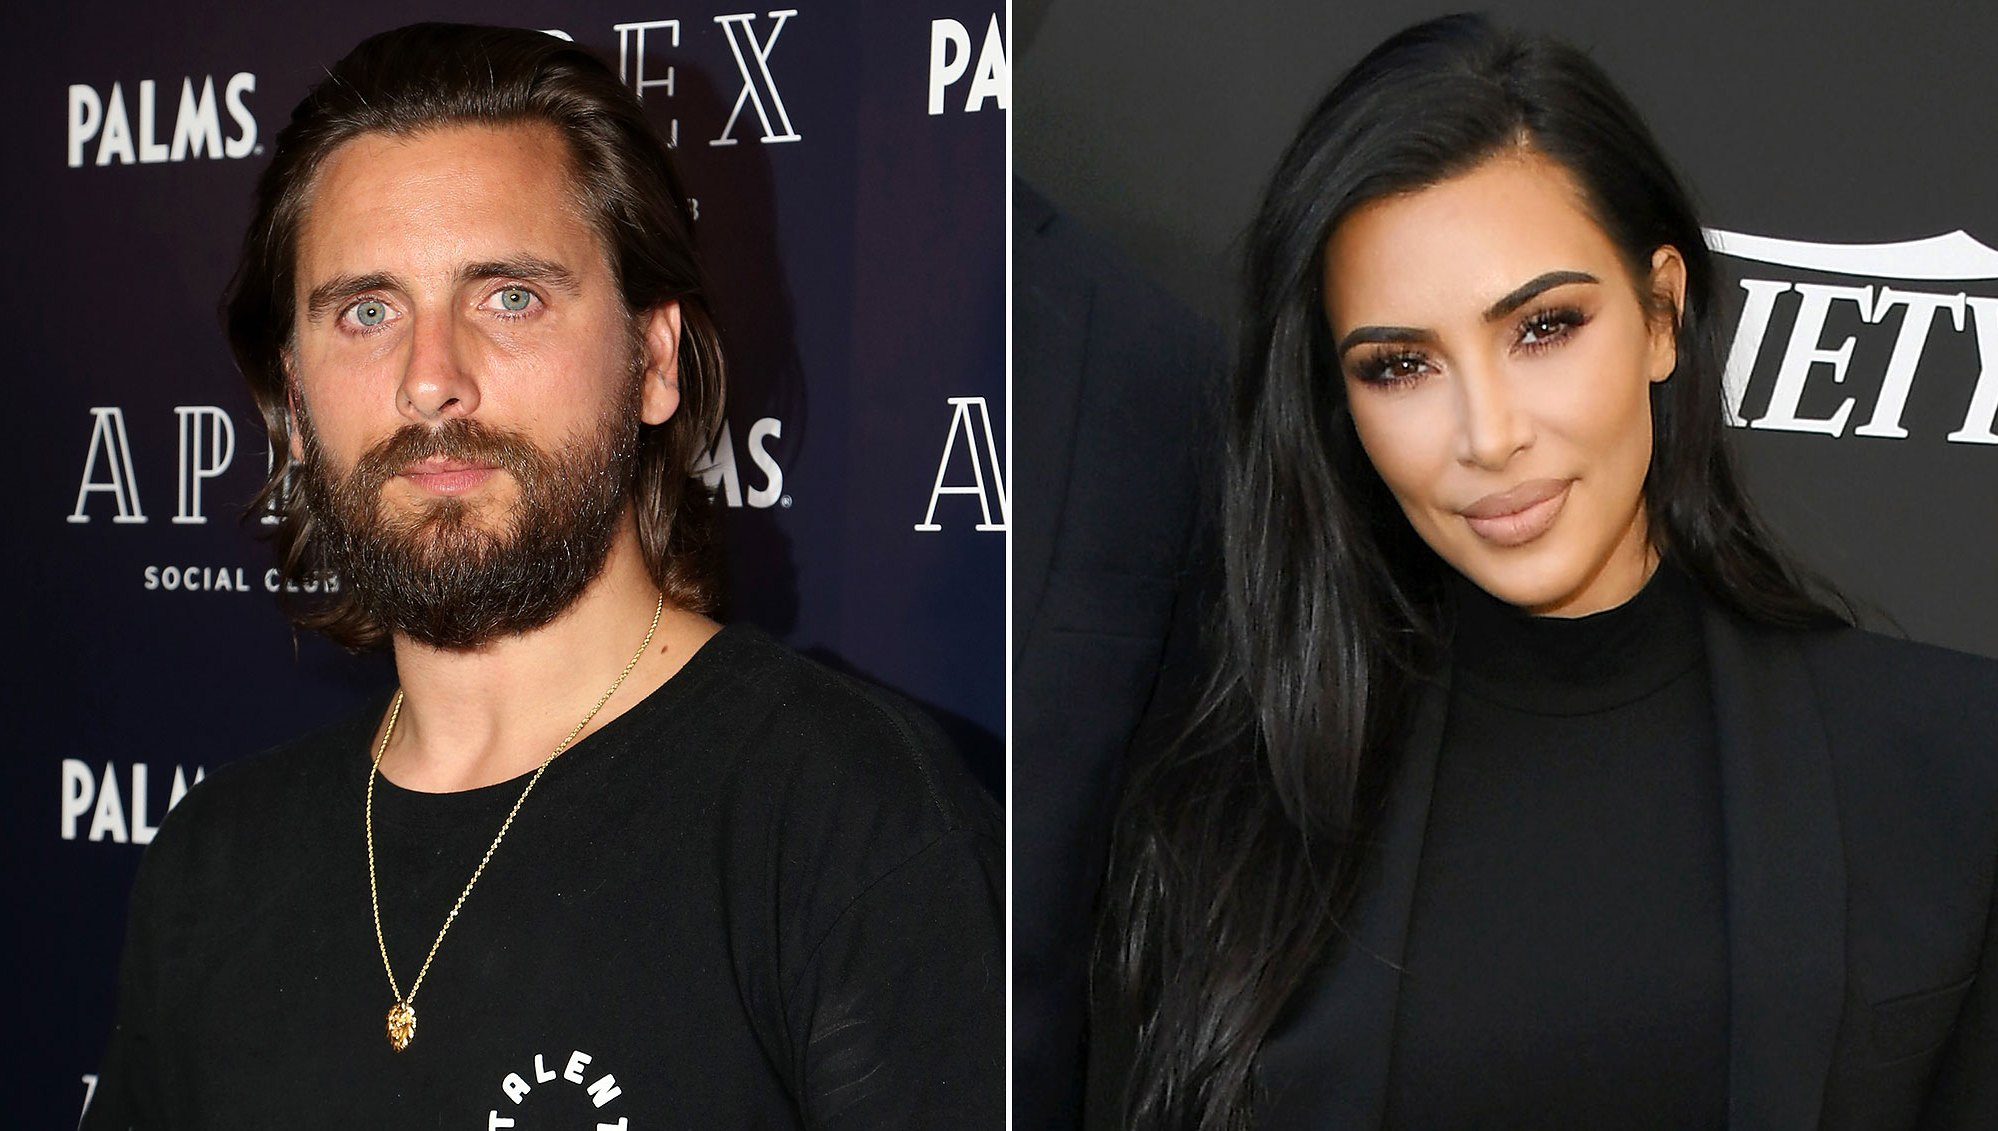 Scott Disick Advises Kim Kardashian on How to Help Khloe Through Tristan Thompson Cheating Scandal